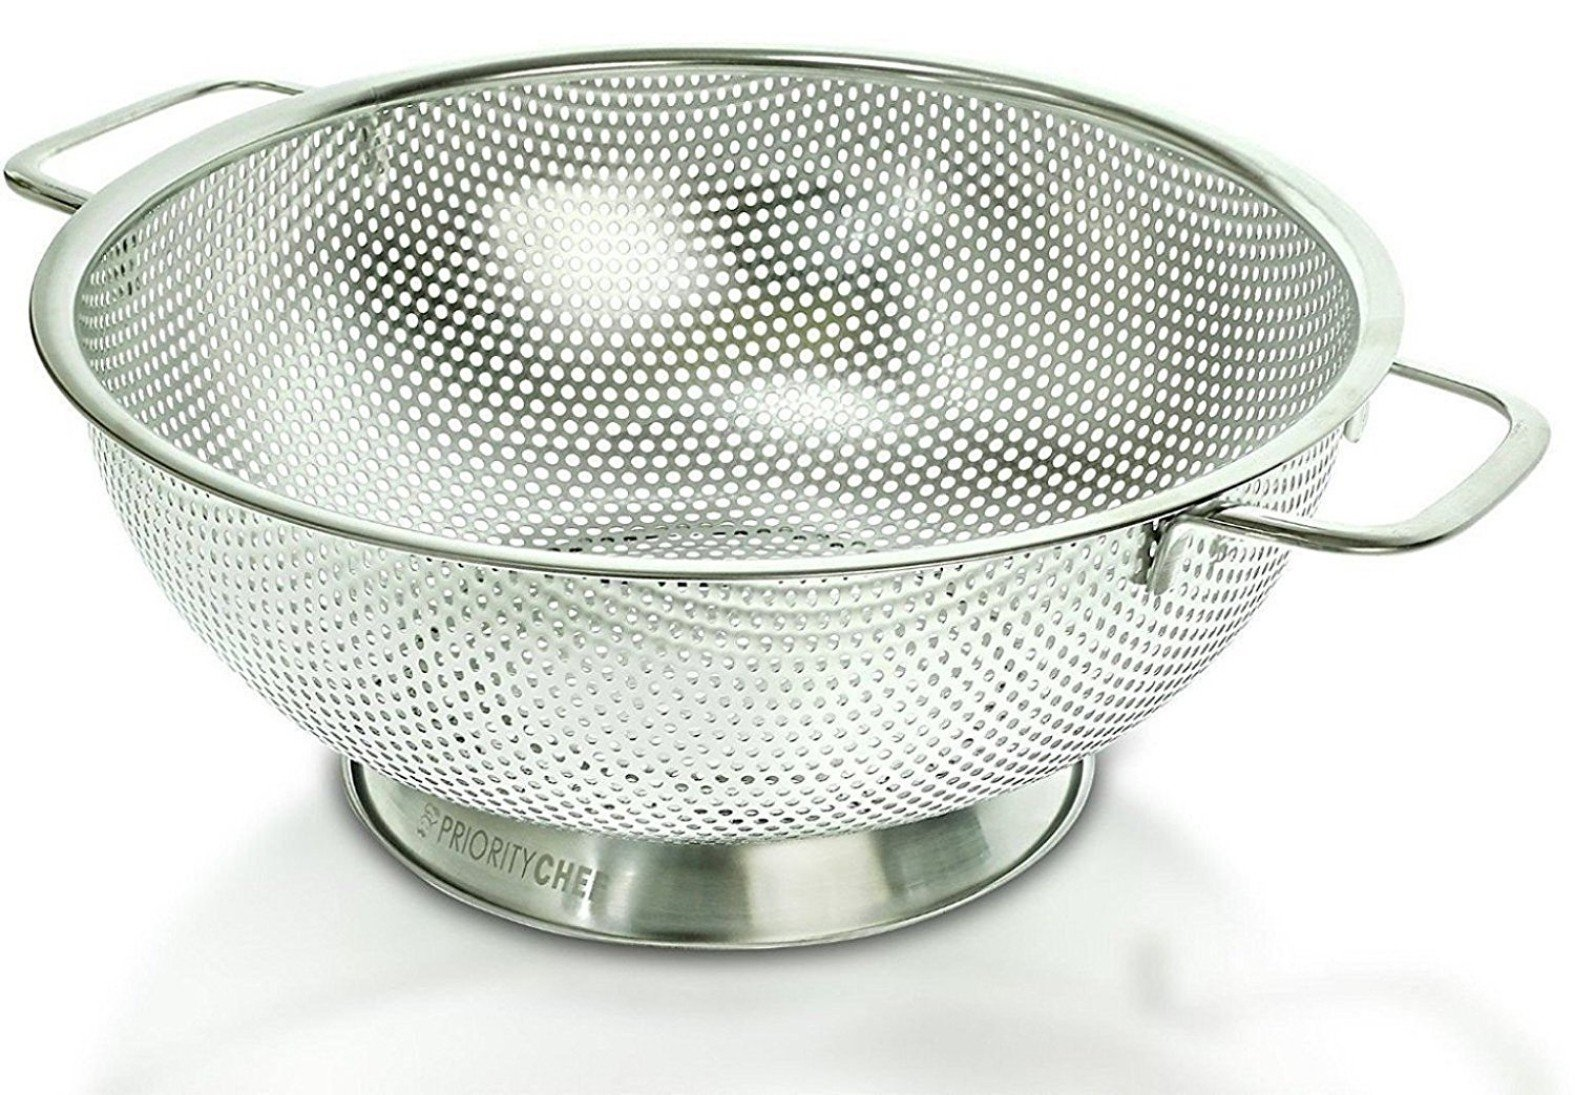 PriorityChef Colander, Stainless Steel 3 Qrt Kitchen Strainer With Large Stable Base by Priority Chef (Image #2)